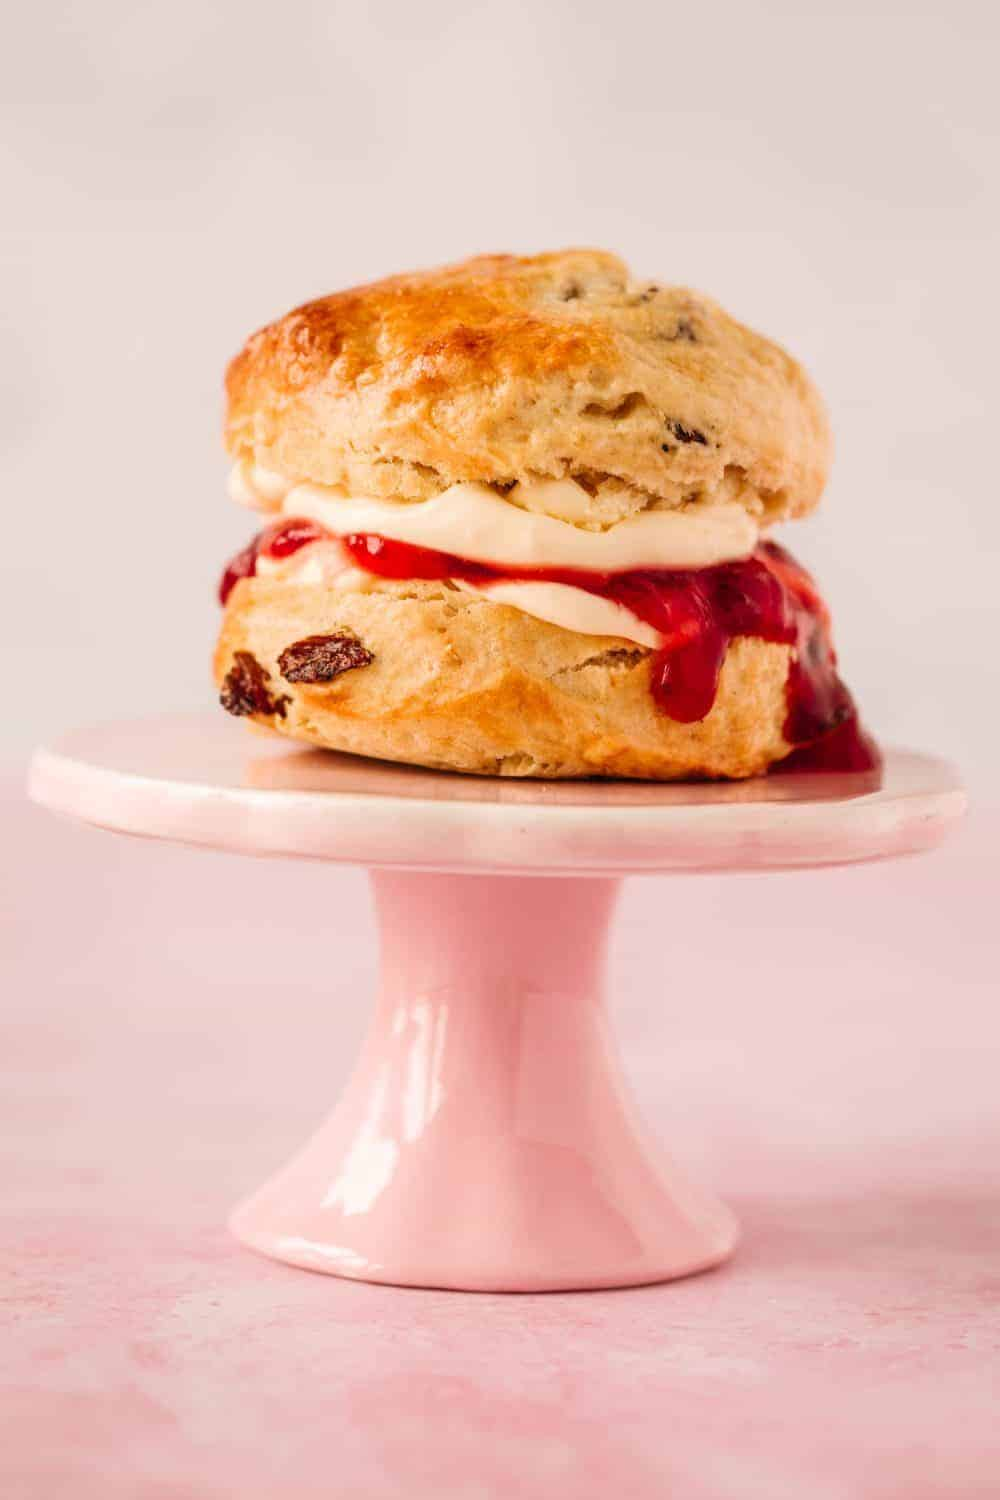 A fruit scone on a small pale pink cake stand.